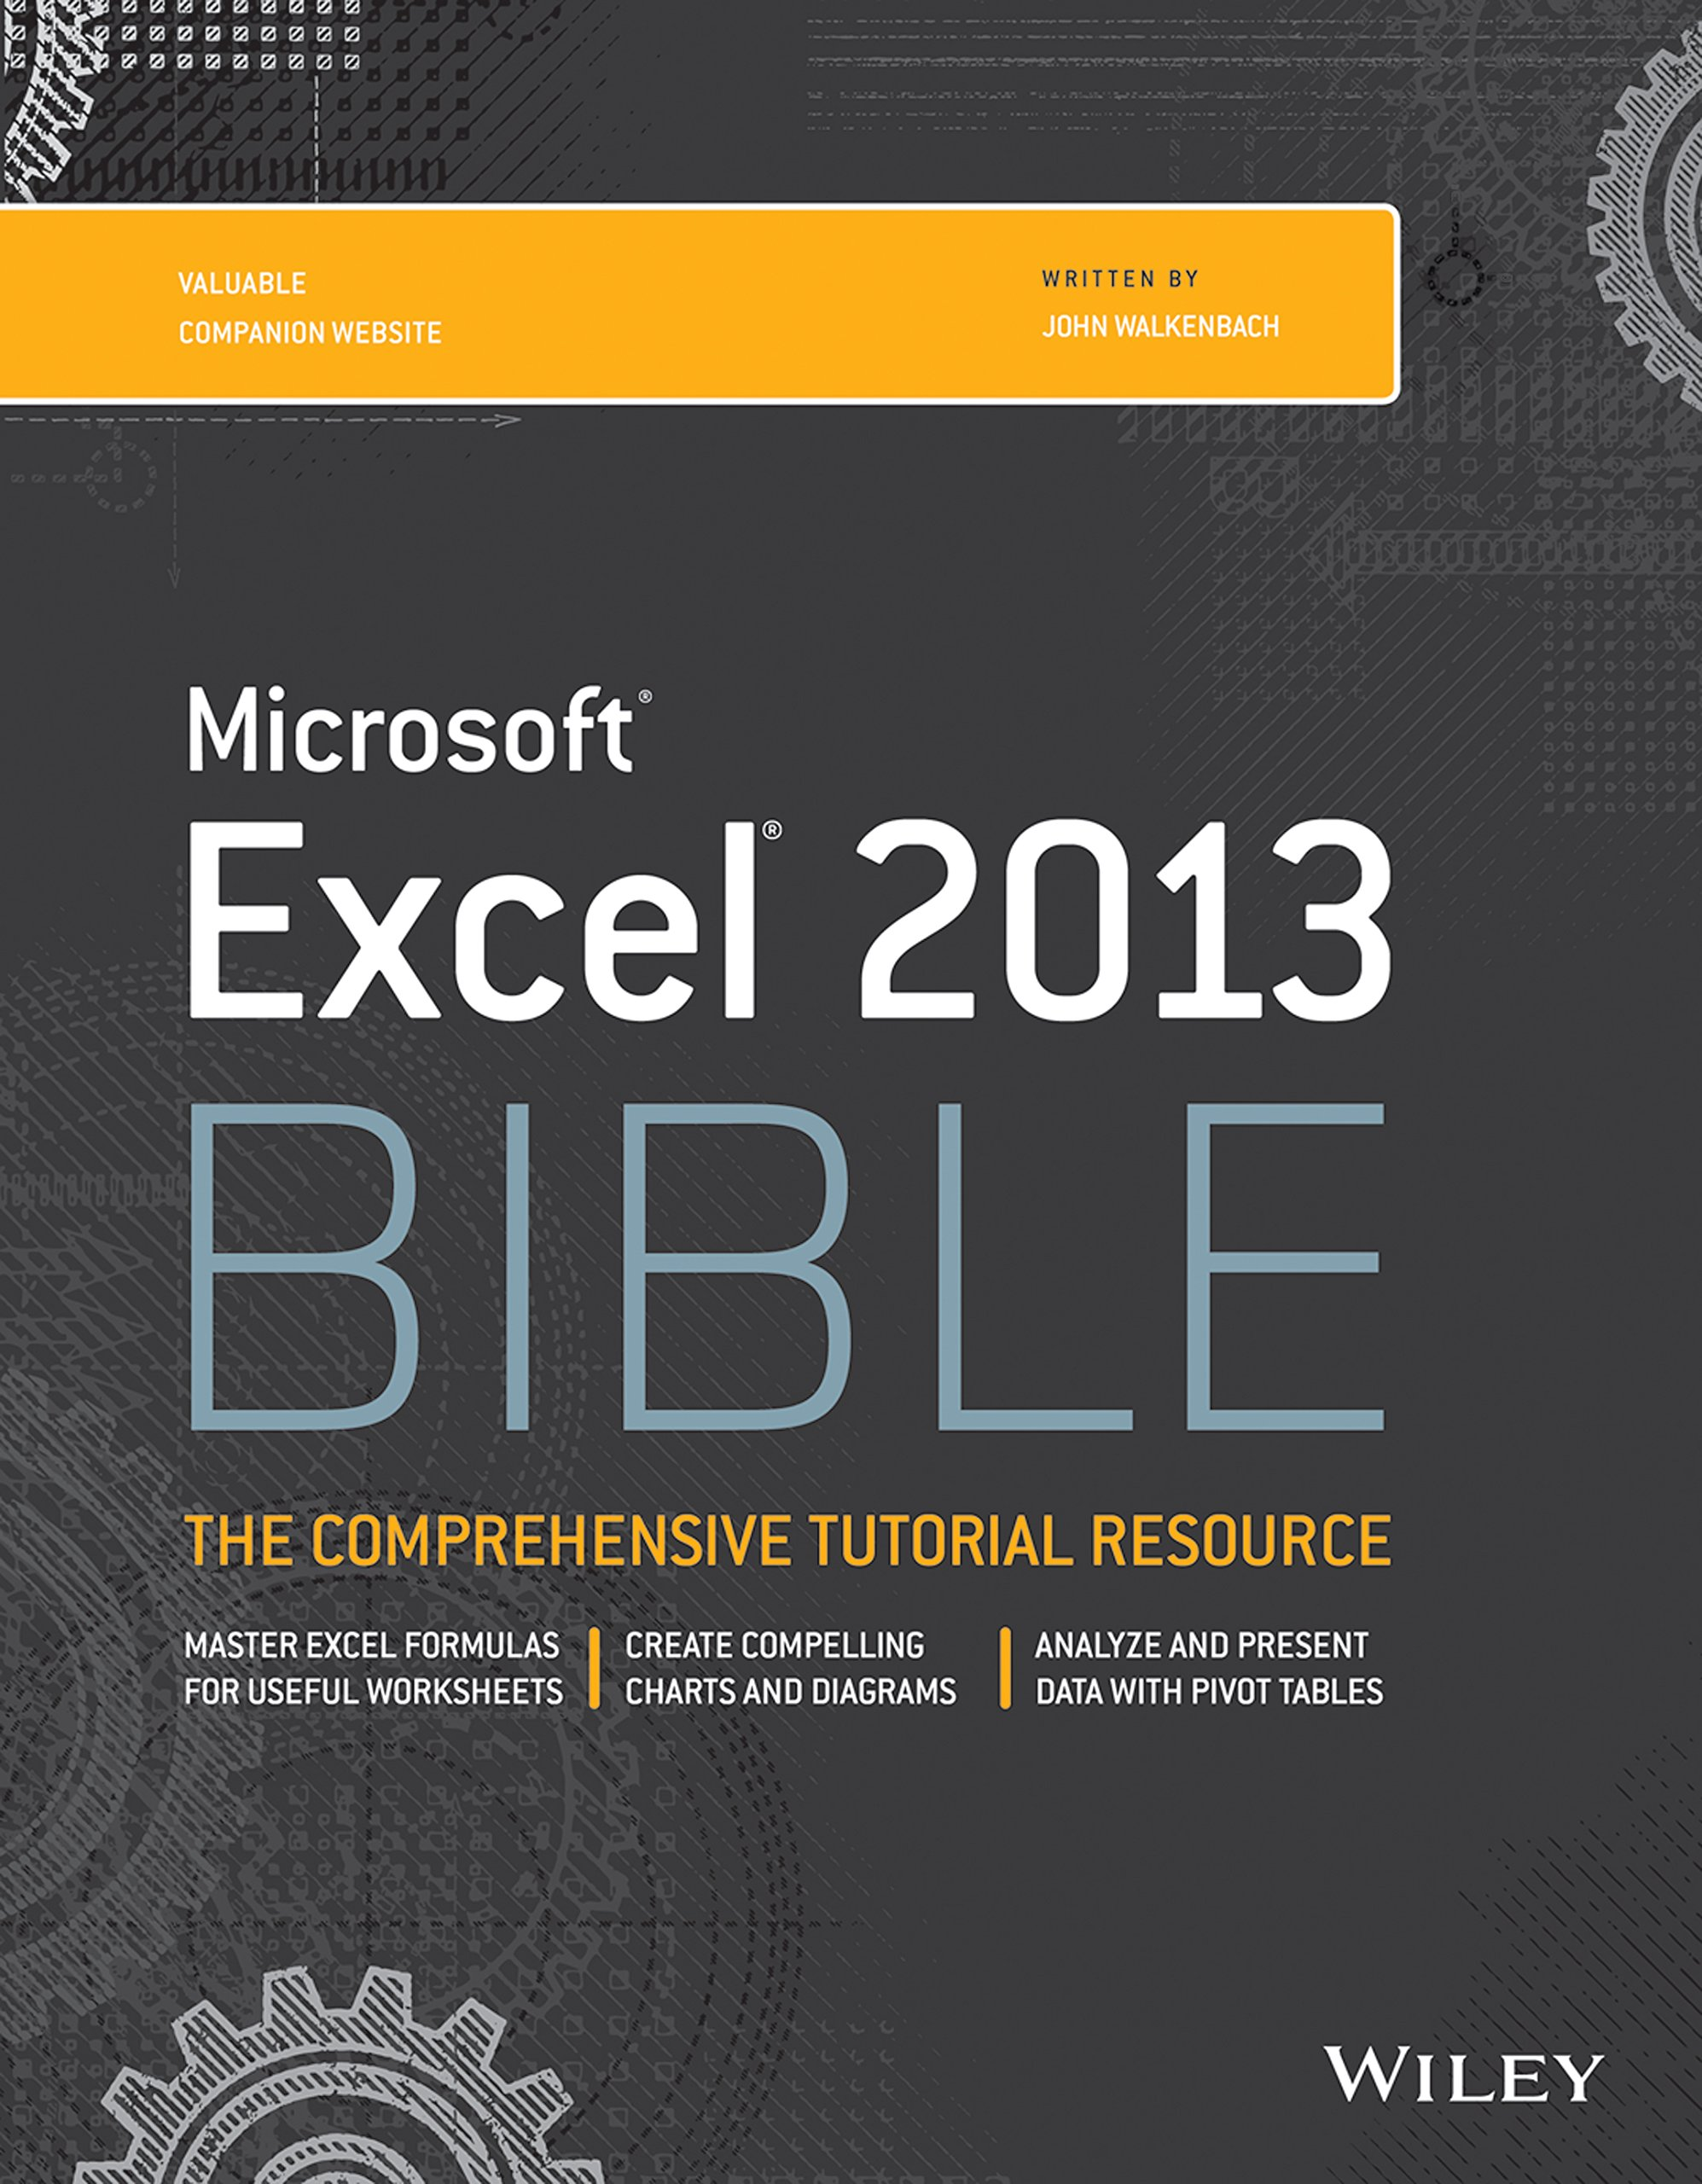 Buy microsoft excel 2013 bible book online at low prices in india buy microsoft excel 2013 bible book online at low prices in india microsoft excel 2013 bible reviews ratings amazon baditri Image collections